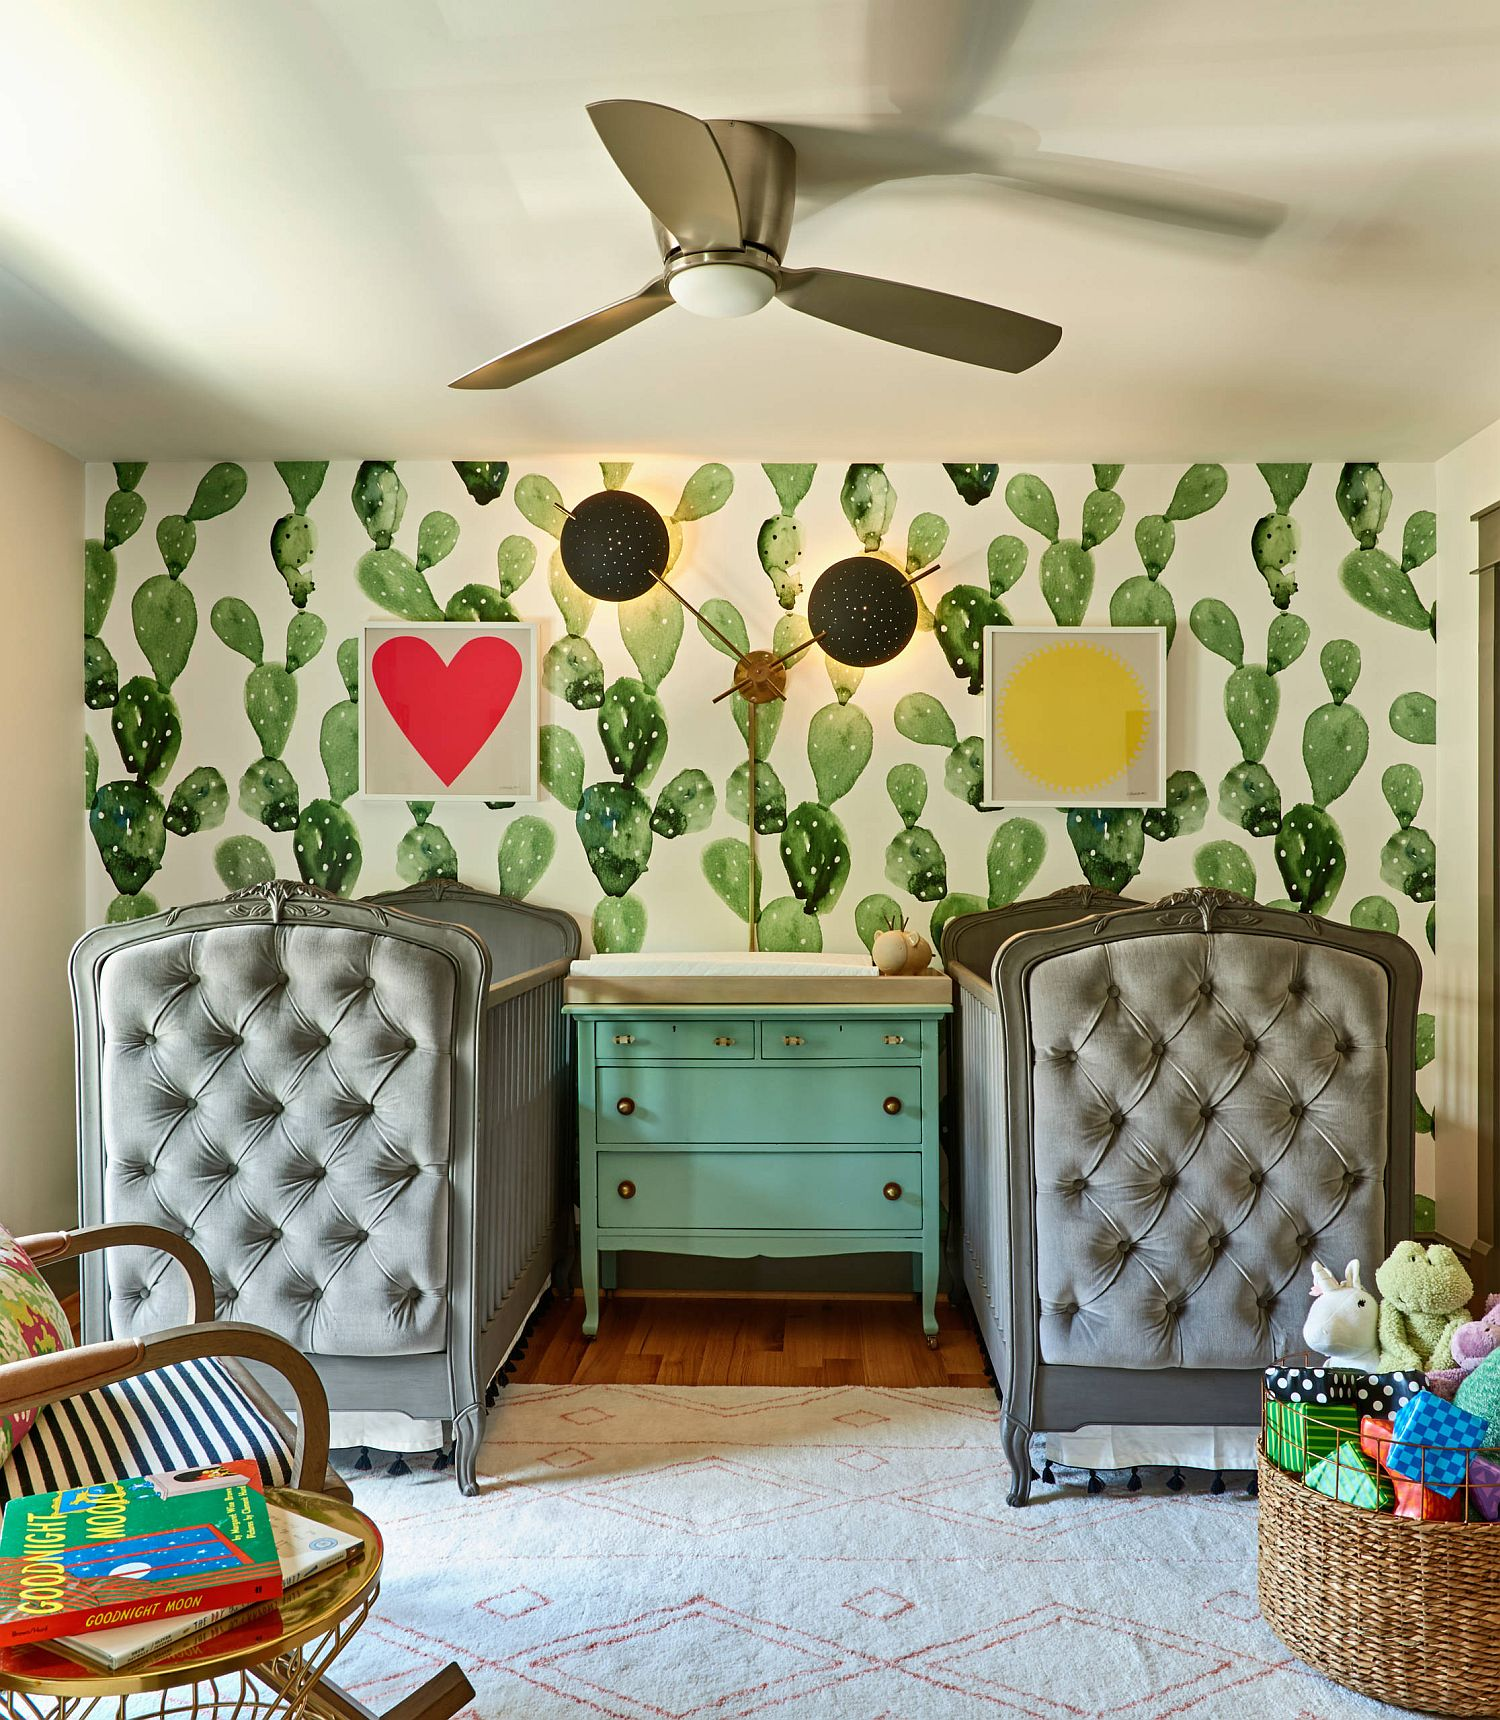 Cactus pattern in the backdrop makes an impact in the small eclectic nursery